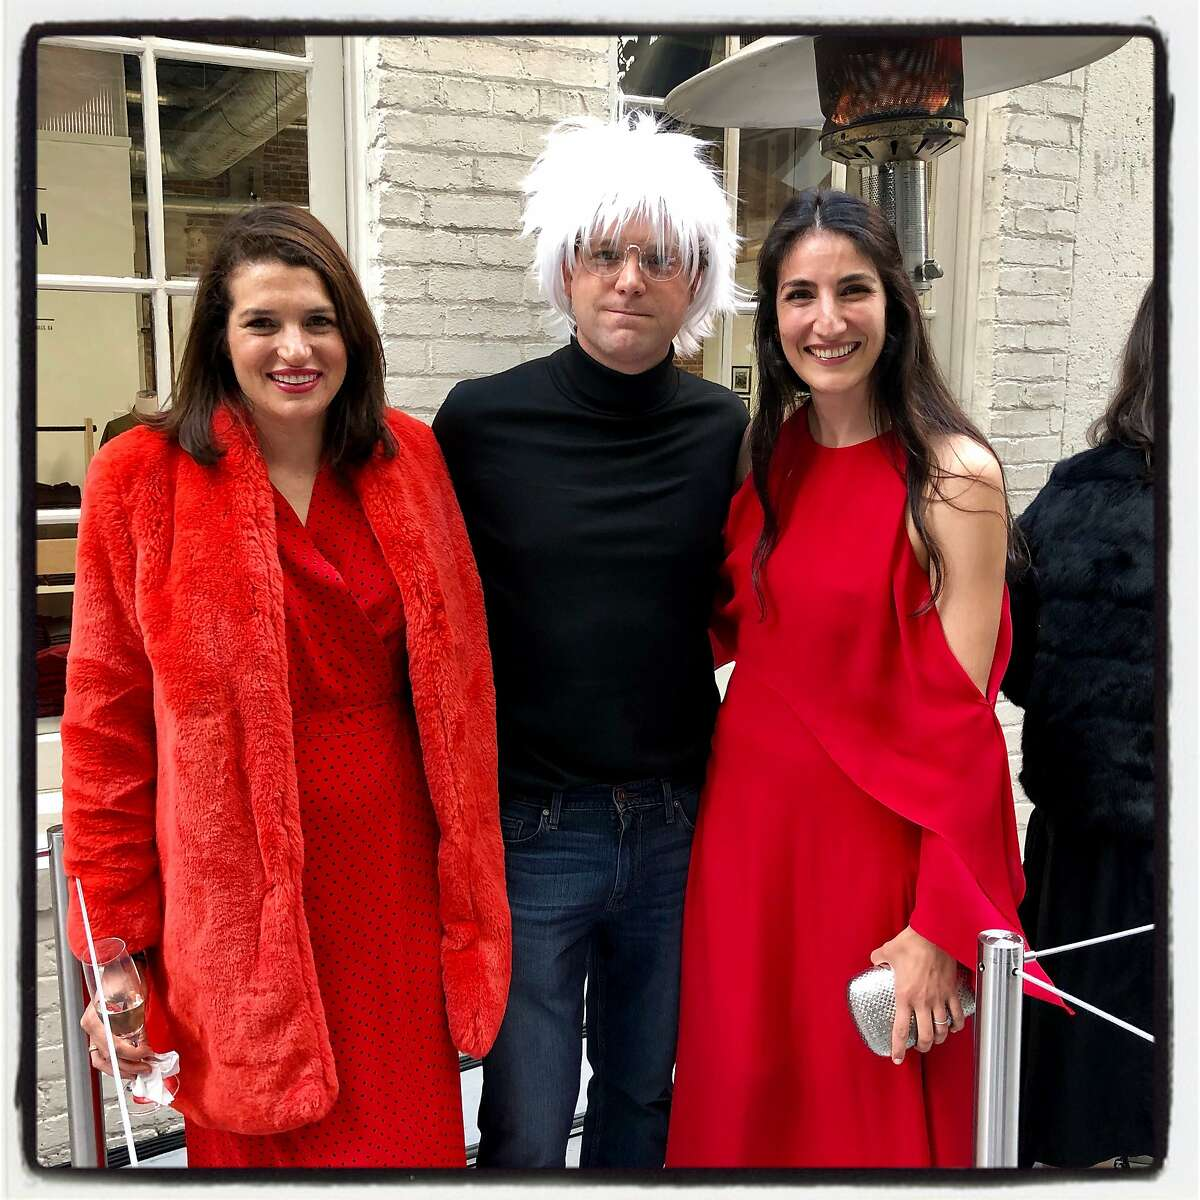 Lexie Fisher George (left) with her husband, a Warhol-wigged Mark George, and Phillips gallerist Sophia Kinell at Art Bash. May 22, 2019.